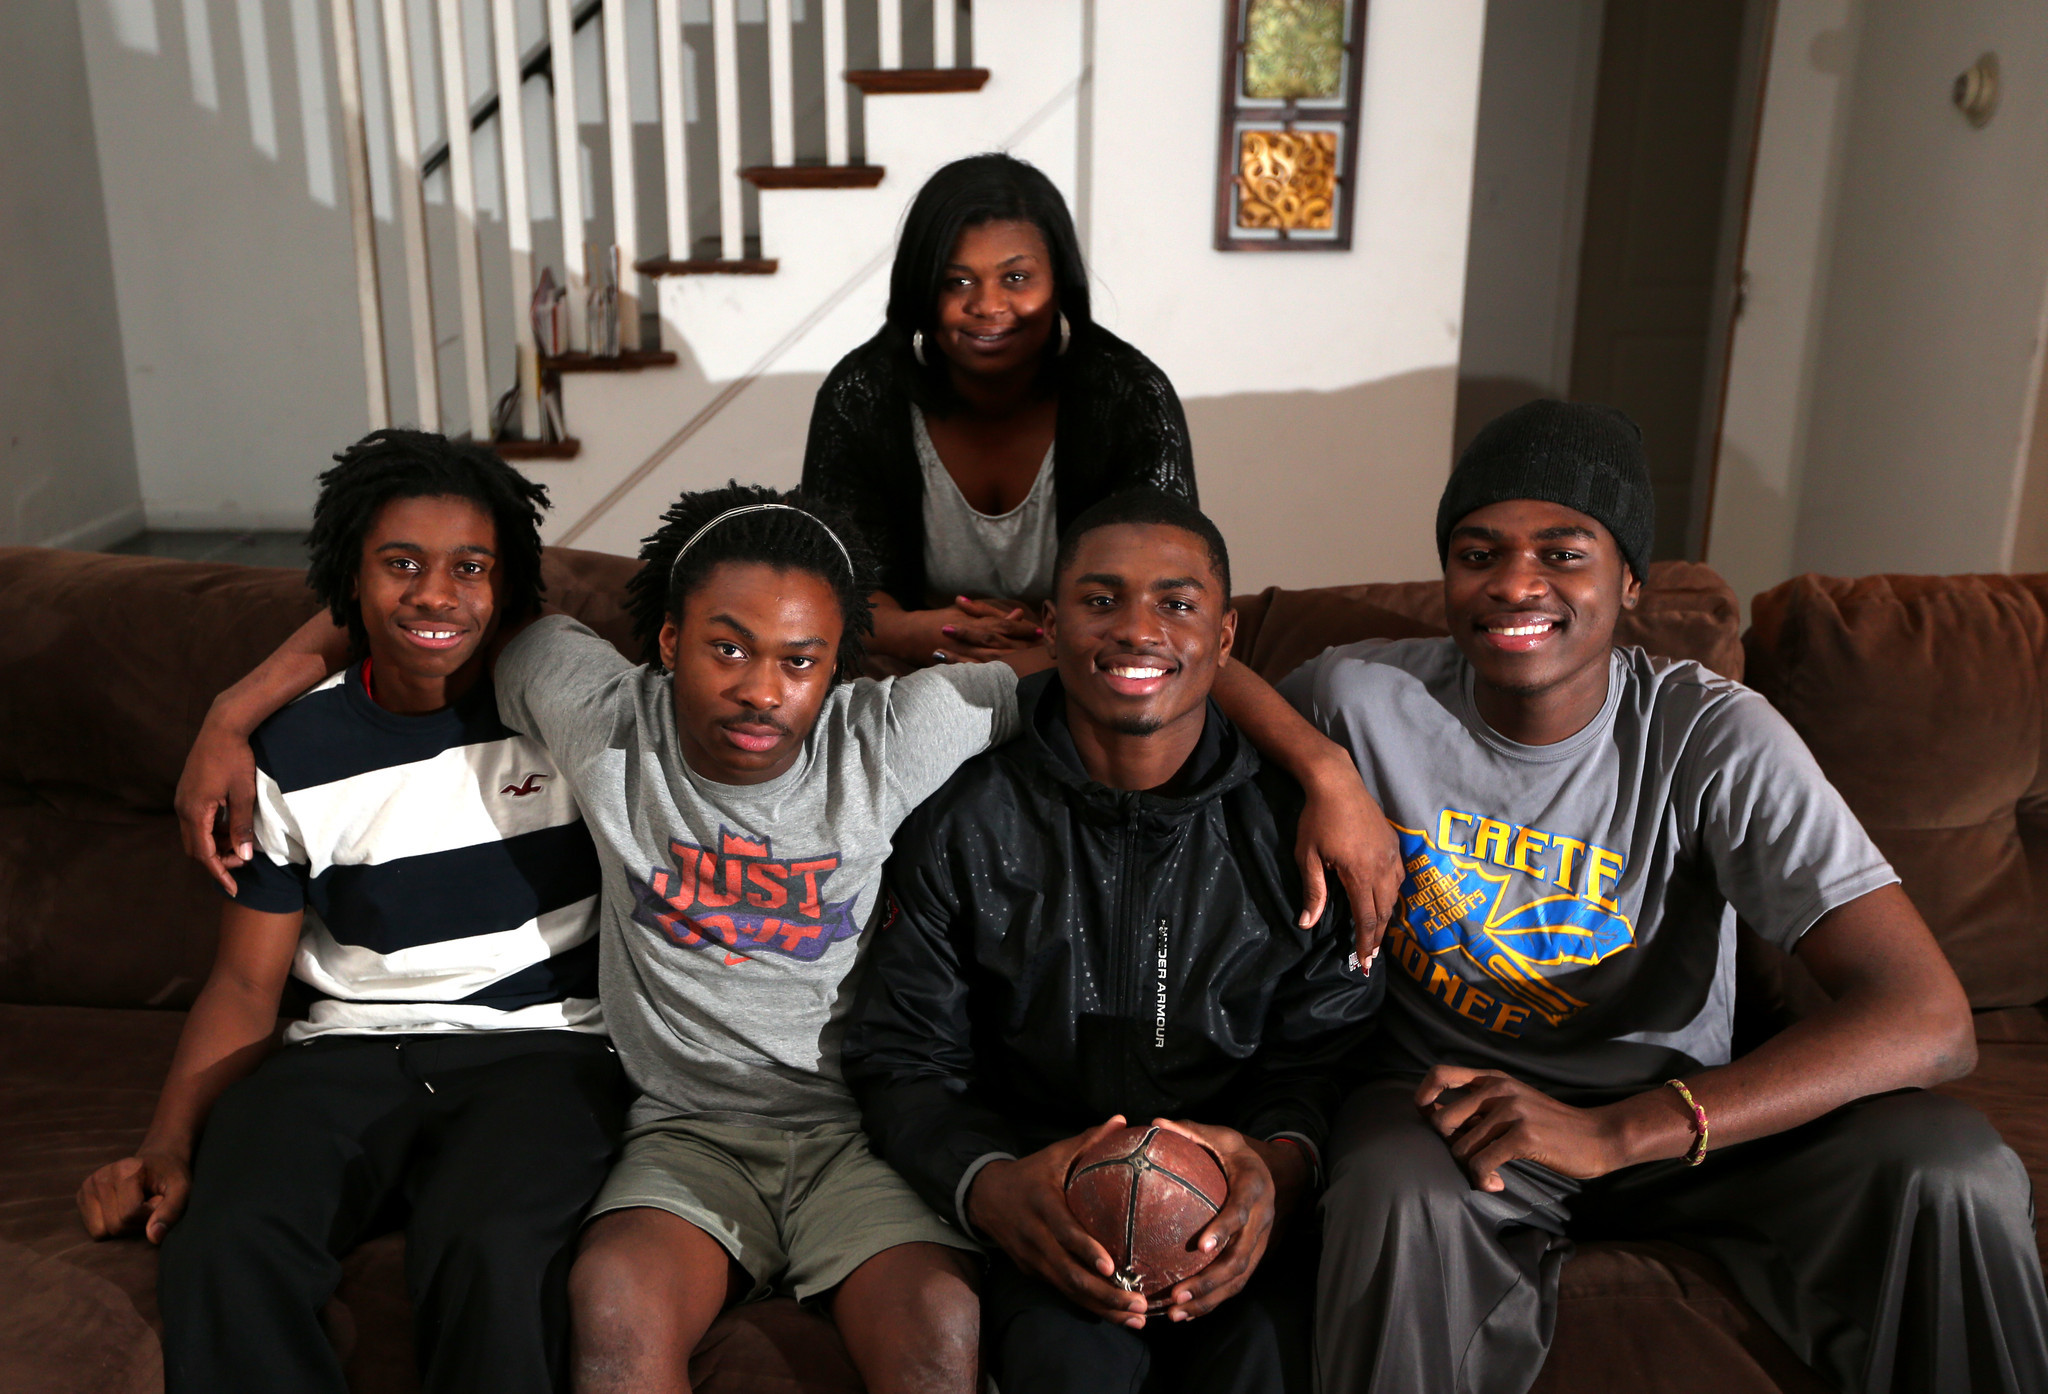 Portrait of 2012 Chicago Tribune football player of the year Laquon Treadwell (second from right), with his family at their home in University Park on Thursday, Dec. 6, 2012. Left to right are brothers Juawan, 15, Darrell, 16, Laquon, and Laron (cq), 18. In back is his mother, Tami.